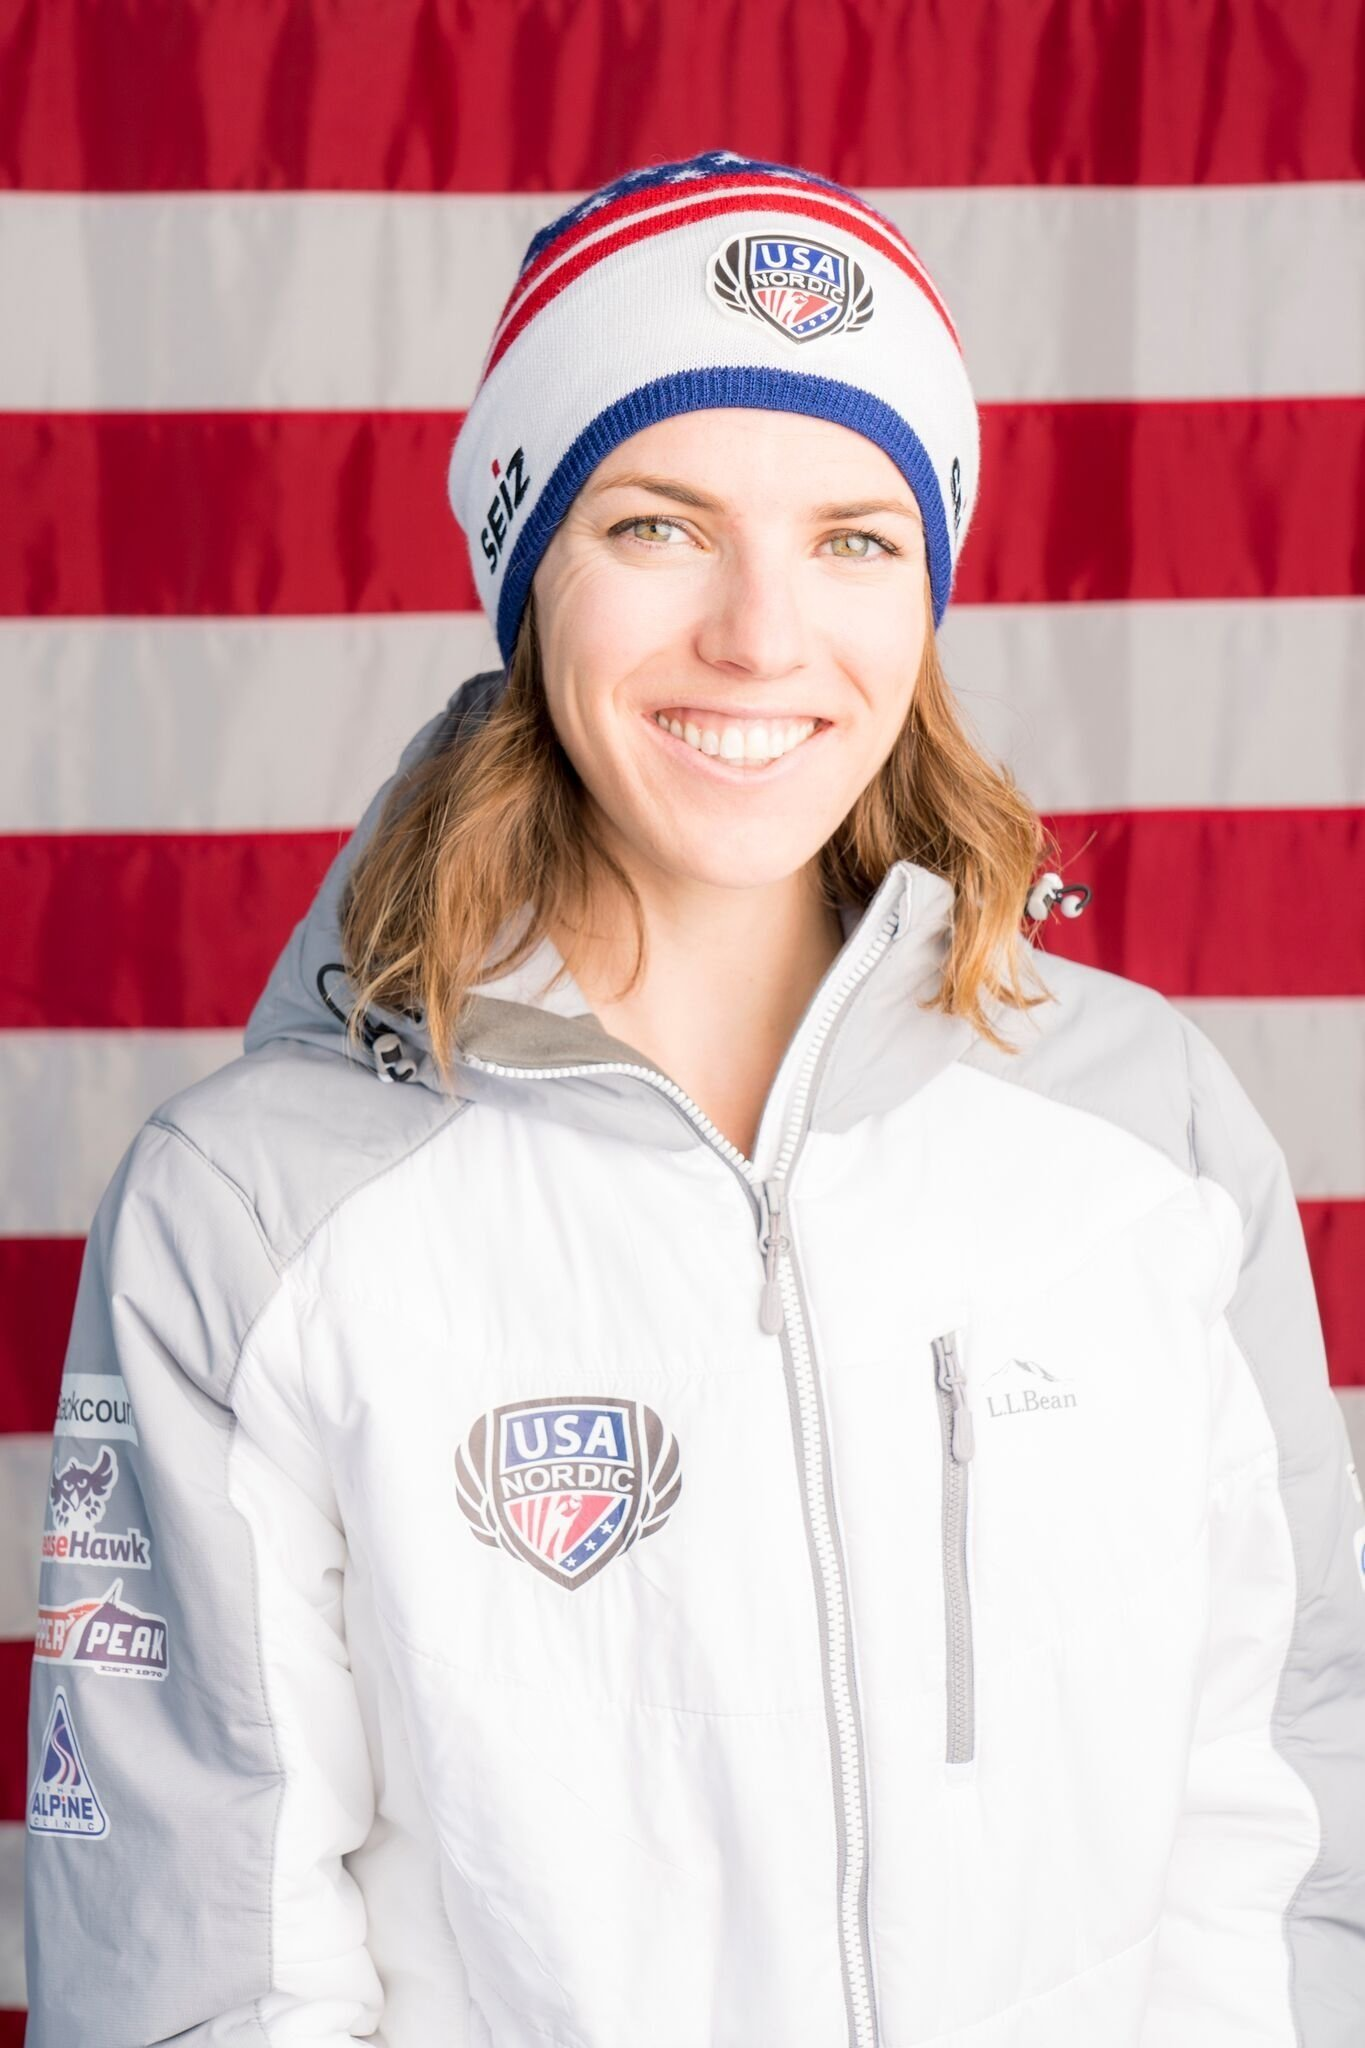 Abby Ringquist is a US Olympic ski jumper who made her Olympic debut at the XXIII Winter Games in PyeongChang, South Korea.   Full Credit: Ben Pieper Photography/Point Productions, LLC